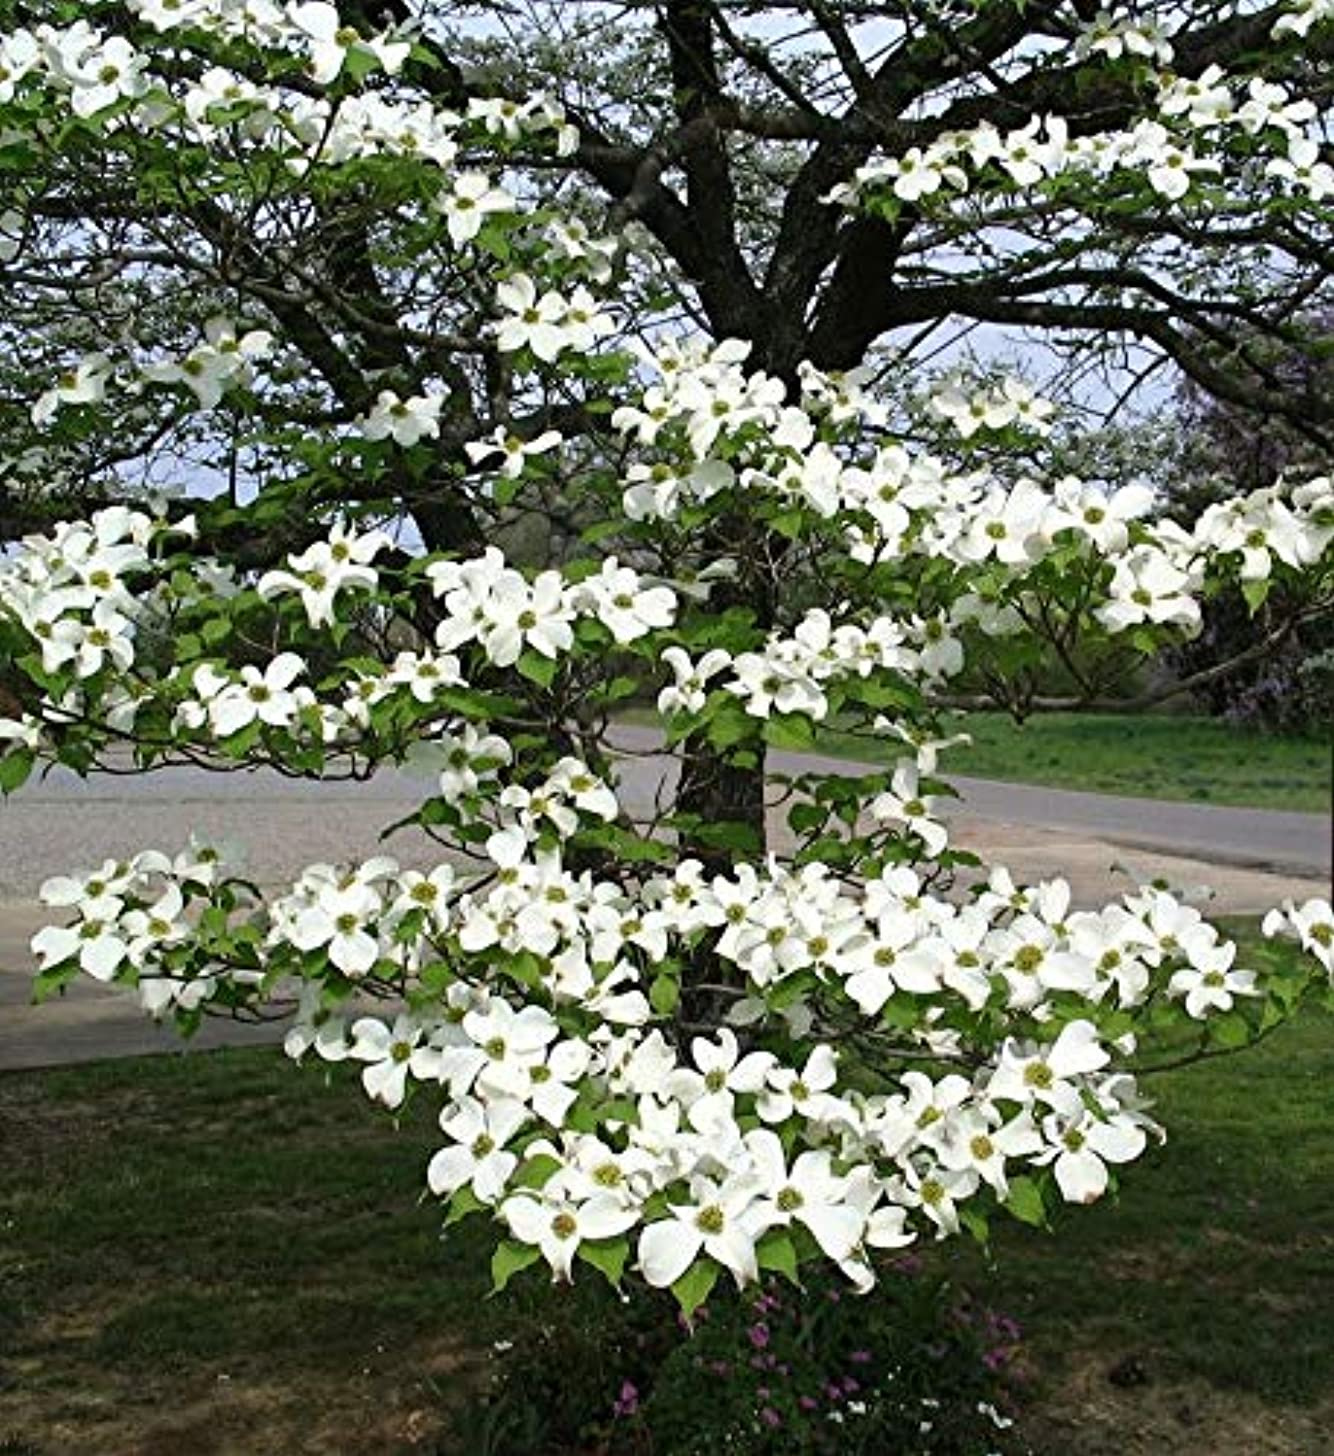 (1 Gallon) White Dogwood Tree, Beautiful White Blossoms in May, in Fall, Leaves Turn to Shades of Burgundy, Purple and deep Crimson Followed by Ruby red Berries.